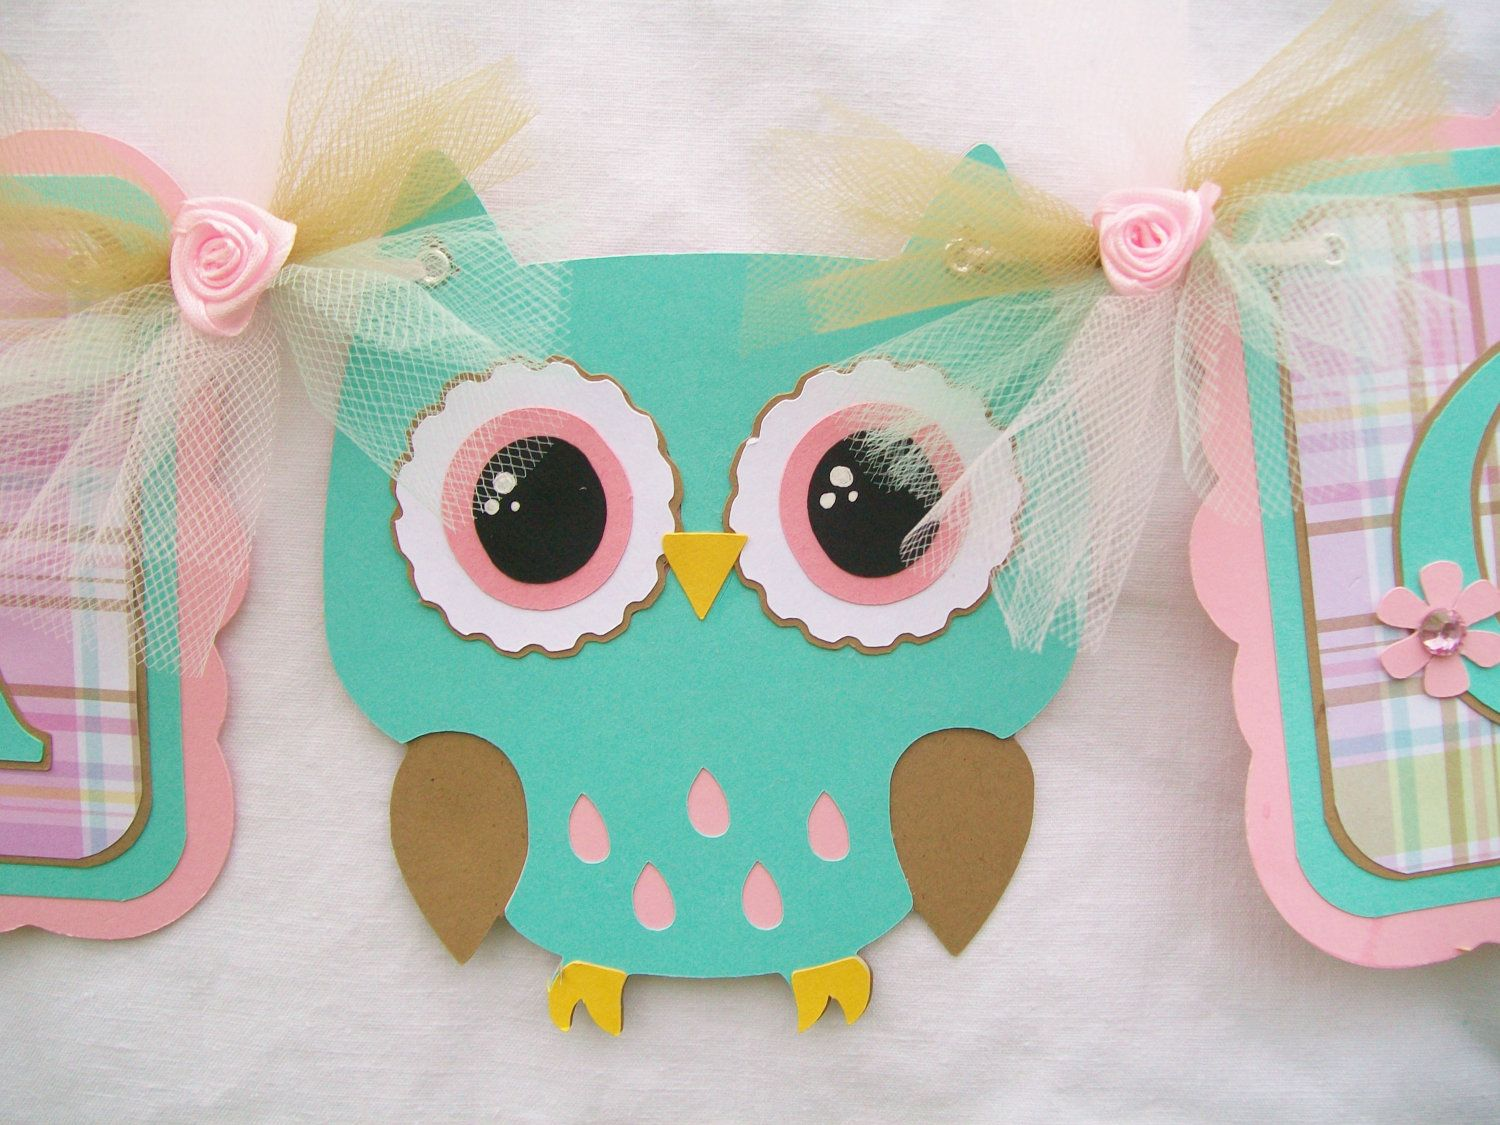 Owl Decorations For Boy Baby Shower - Owl baby shower owl banner owl baby owl decorations baby shower banner pink and teal decorations photo prop it s a girl banner